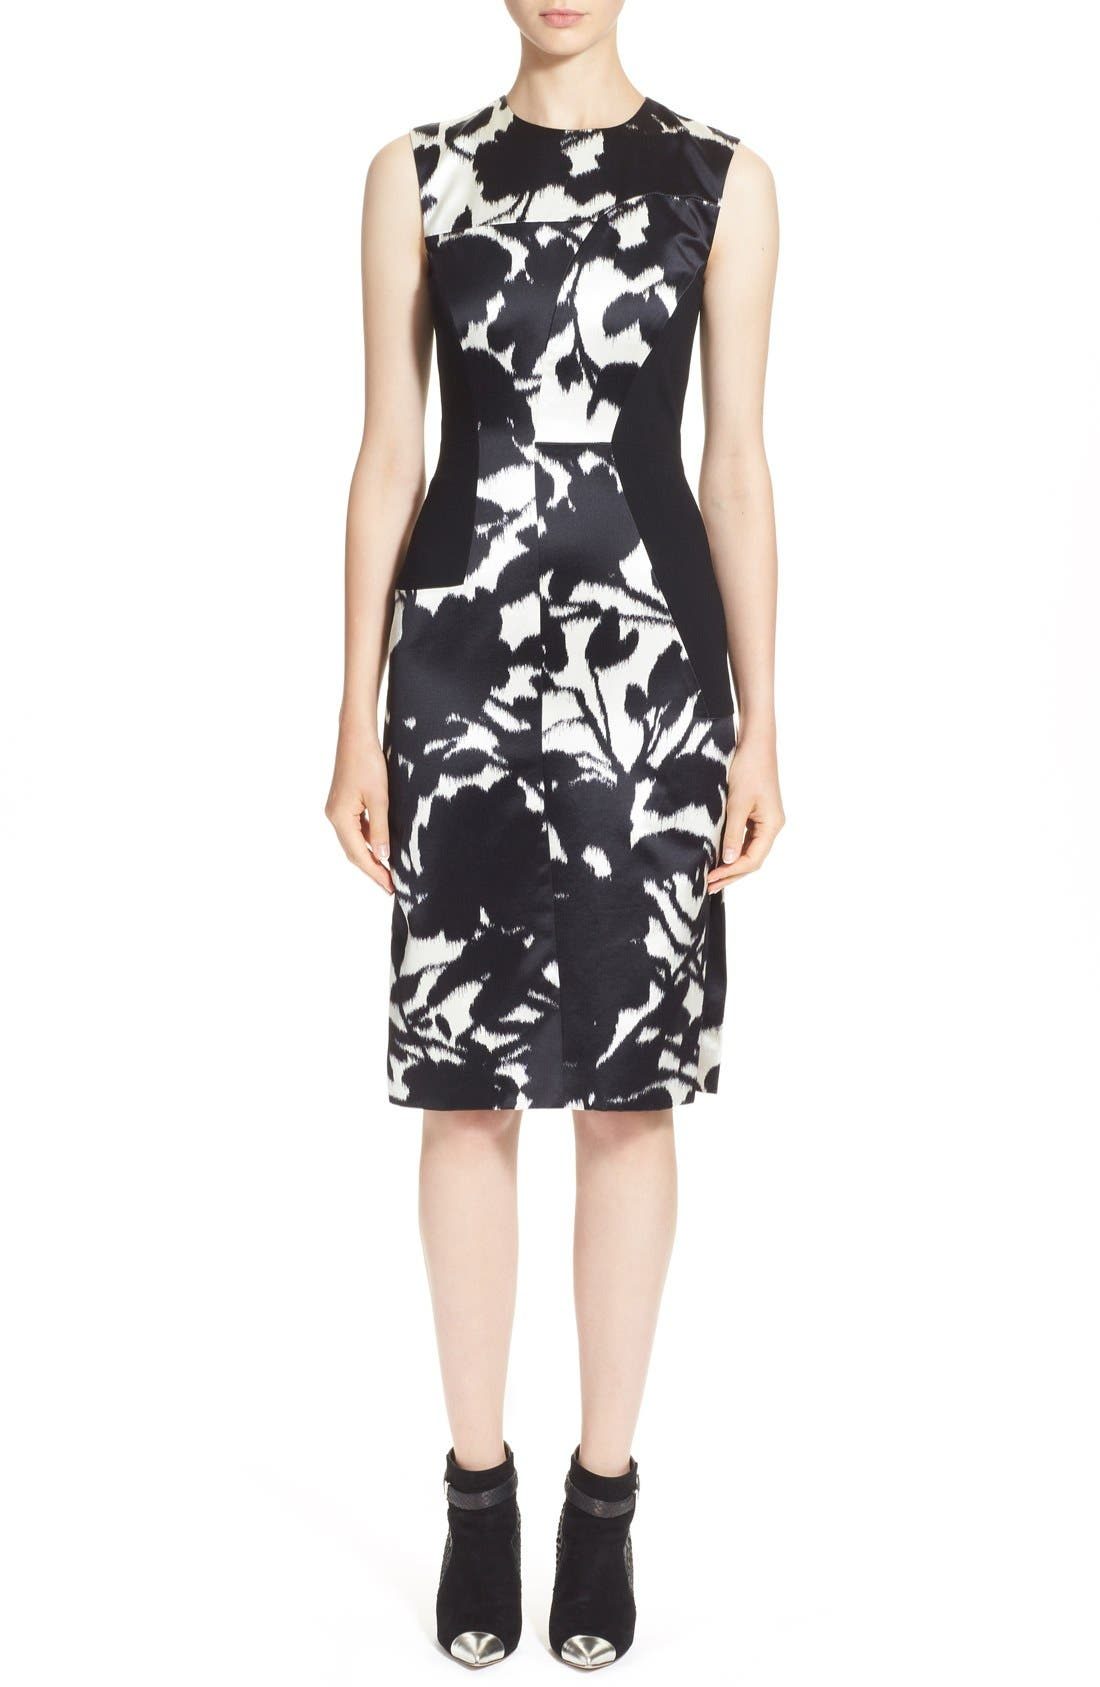 Alternate Image 1 Selected - Prabal Gurung Floral Print Sleeveless Duchesse Satin Sheath Dress